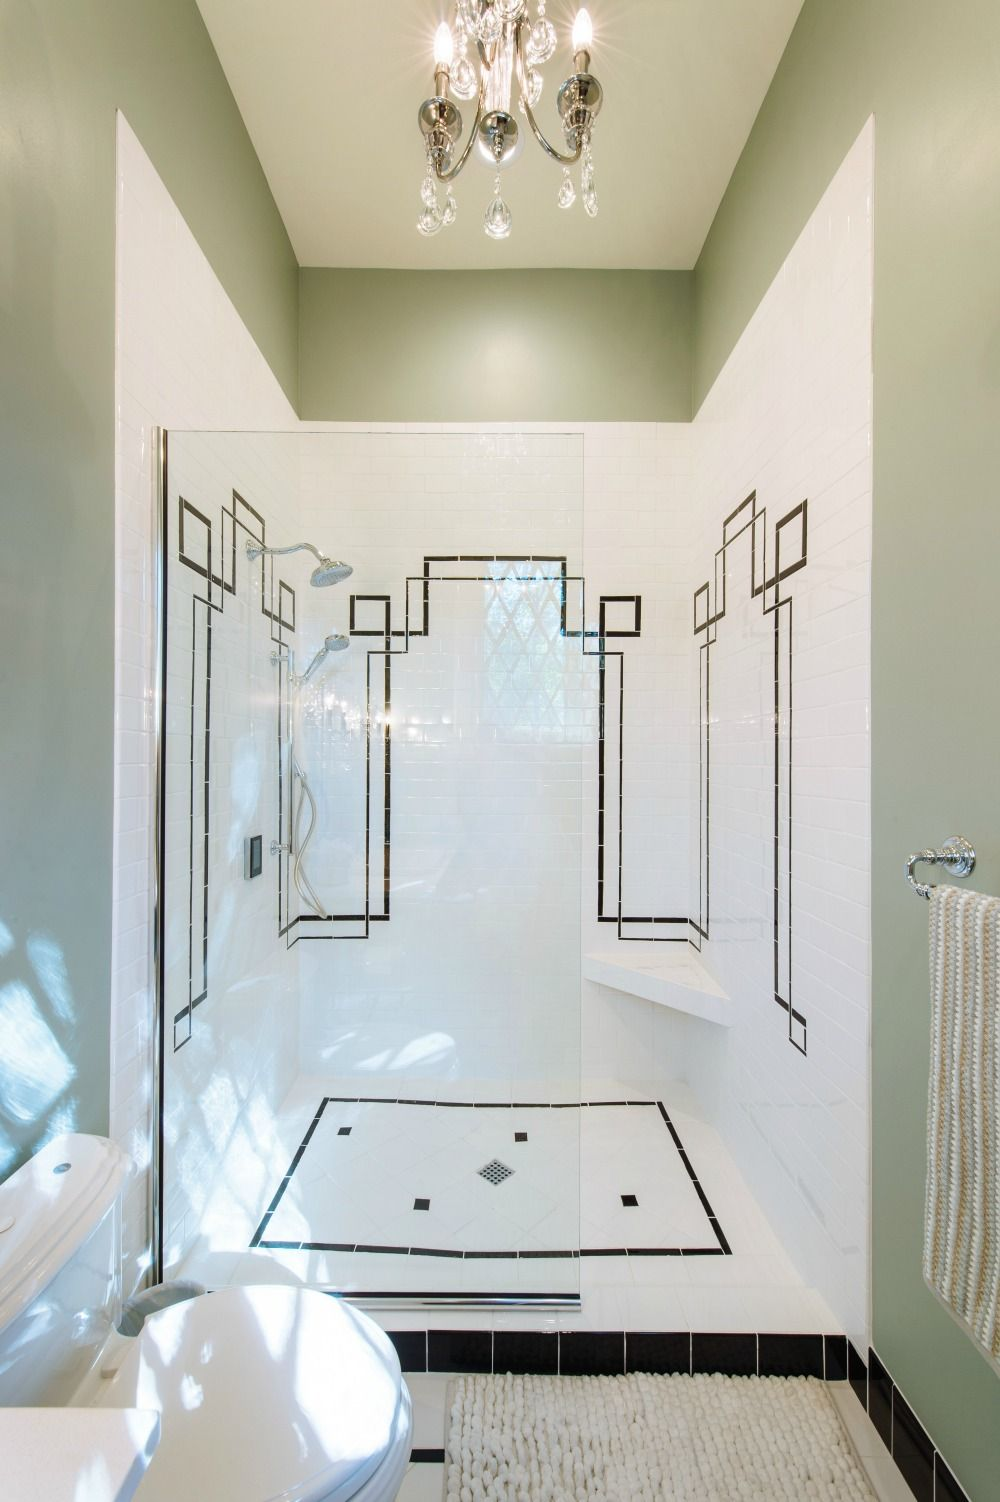 Southern Home Paint Color Palette   White tile bathrooms, White ...